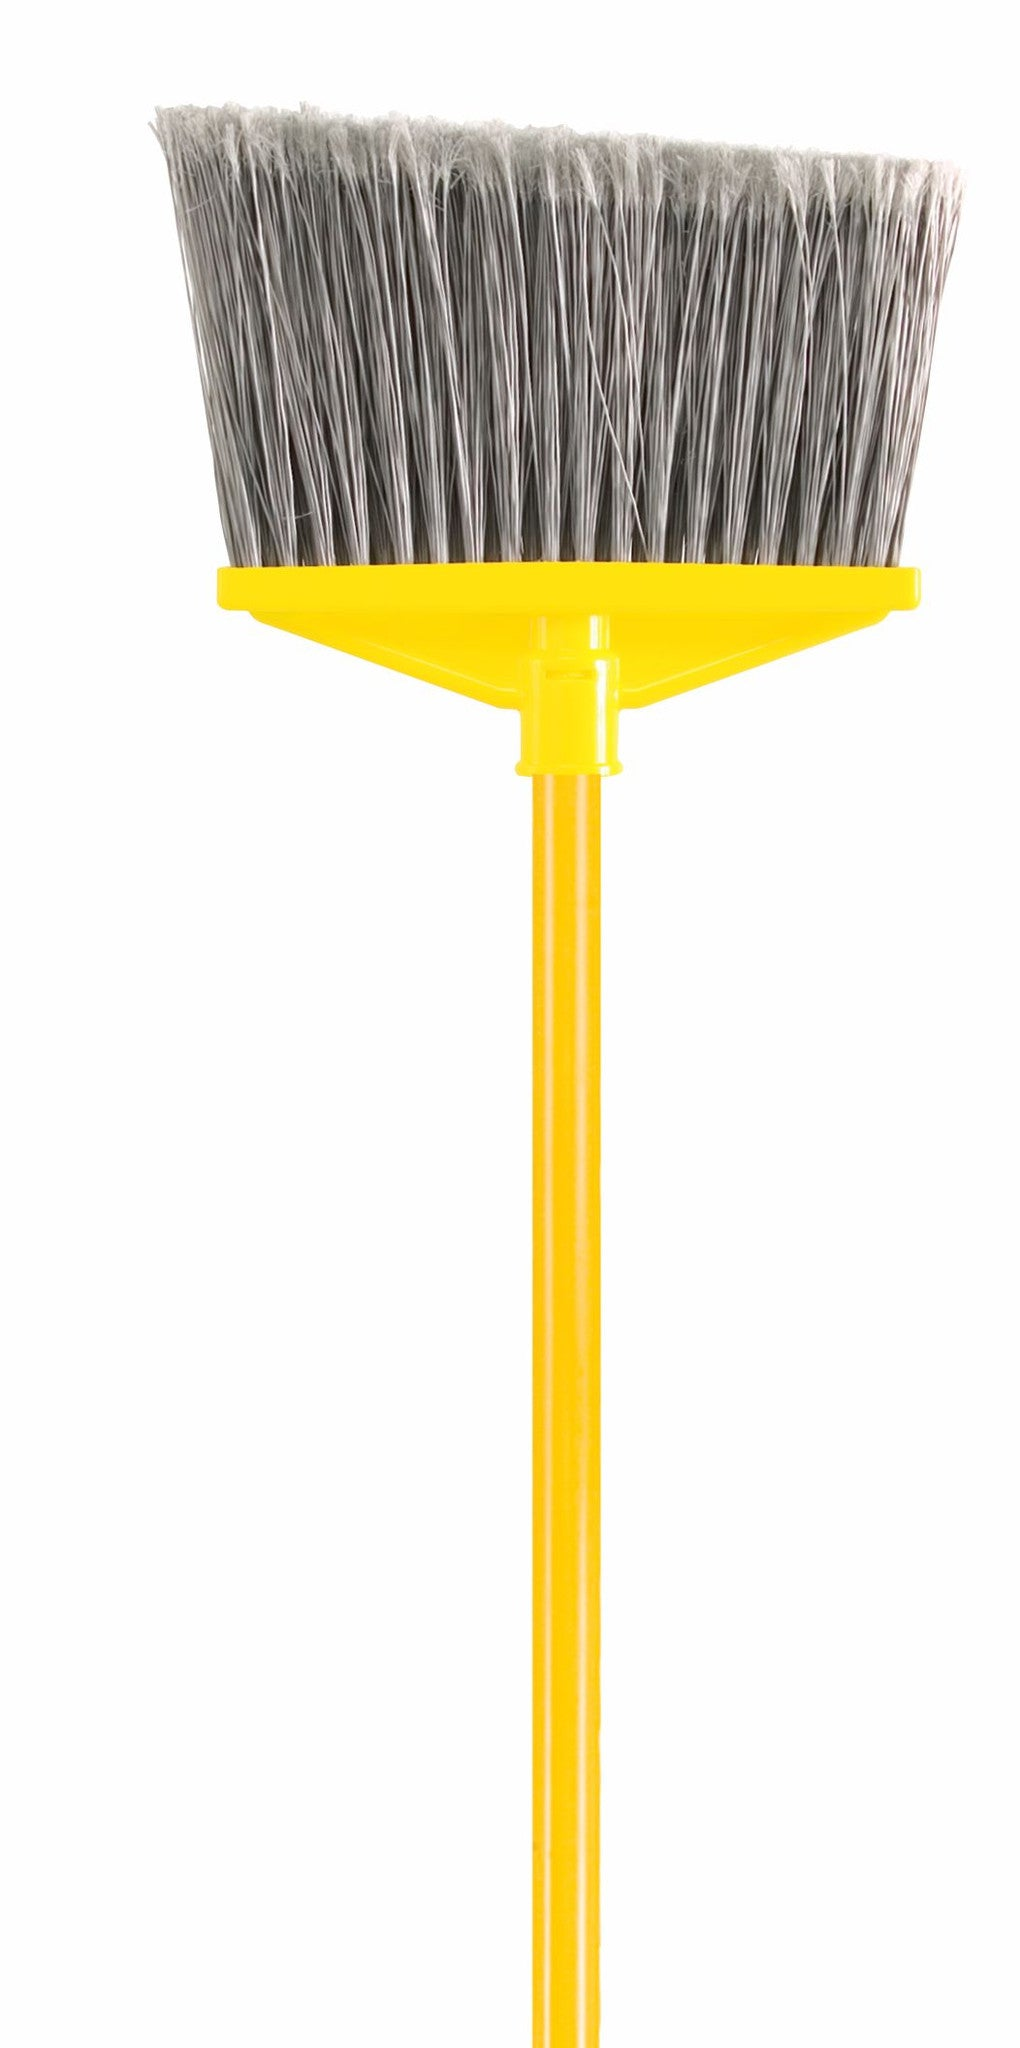 "FLAGGED BROOM 1"" DIA VINYL COATED METAL HANDLE"